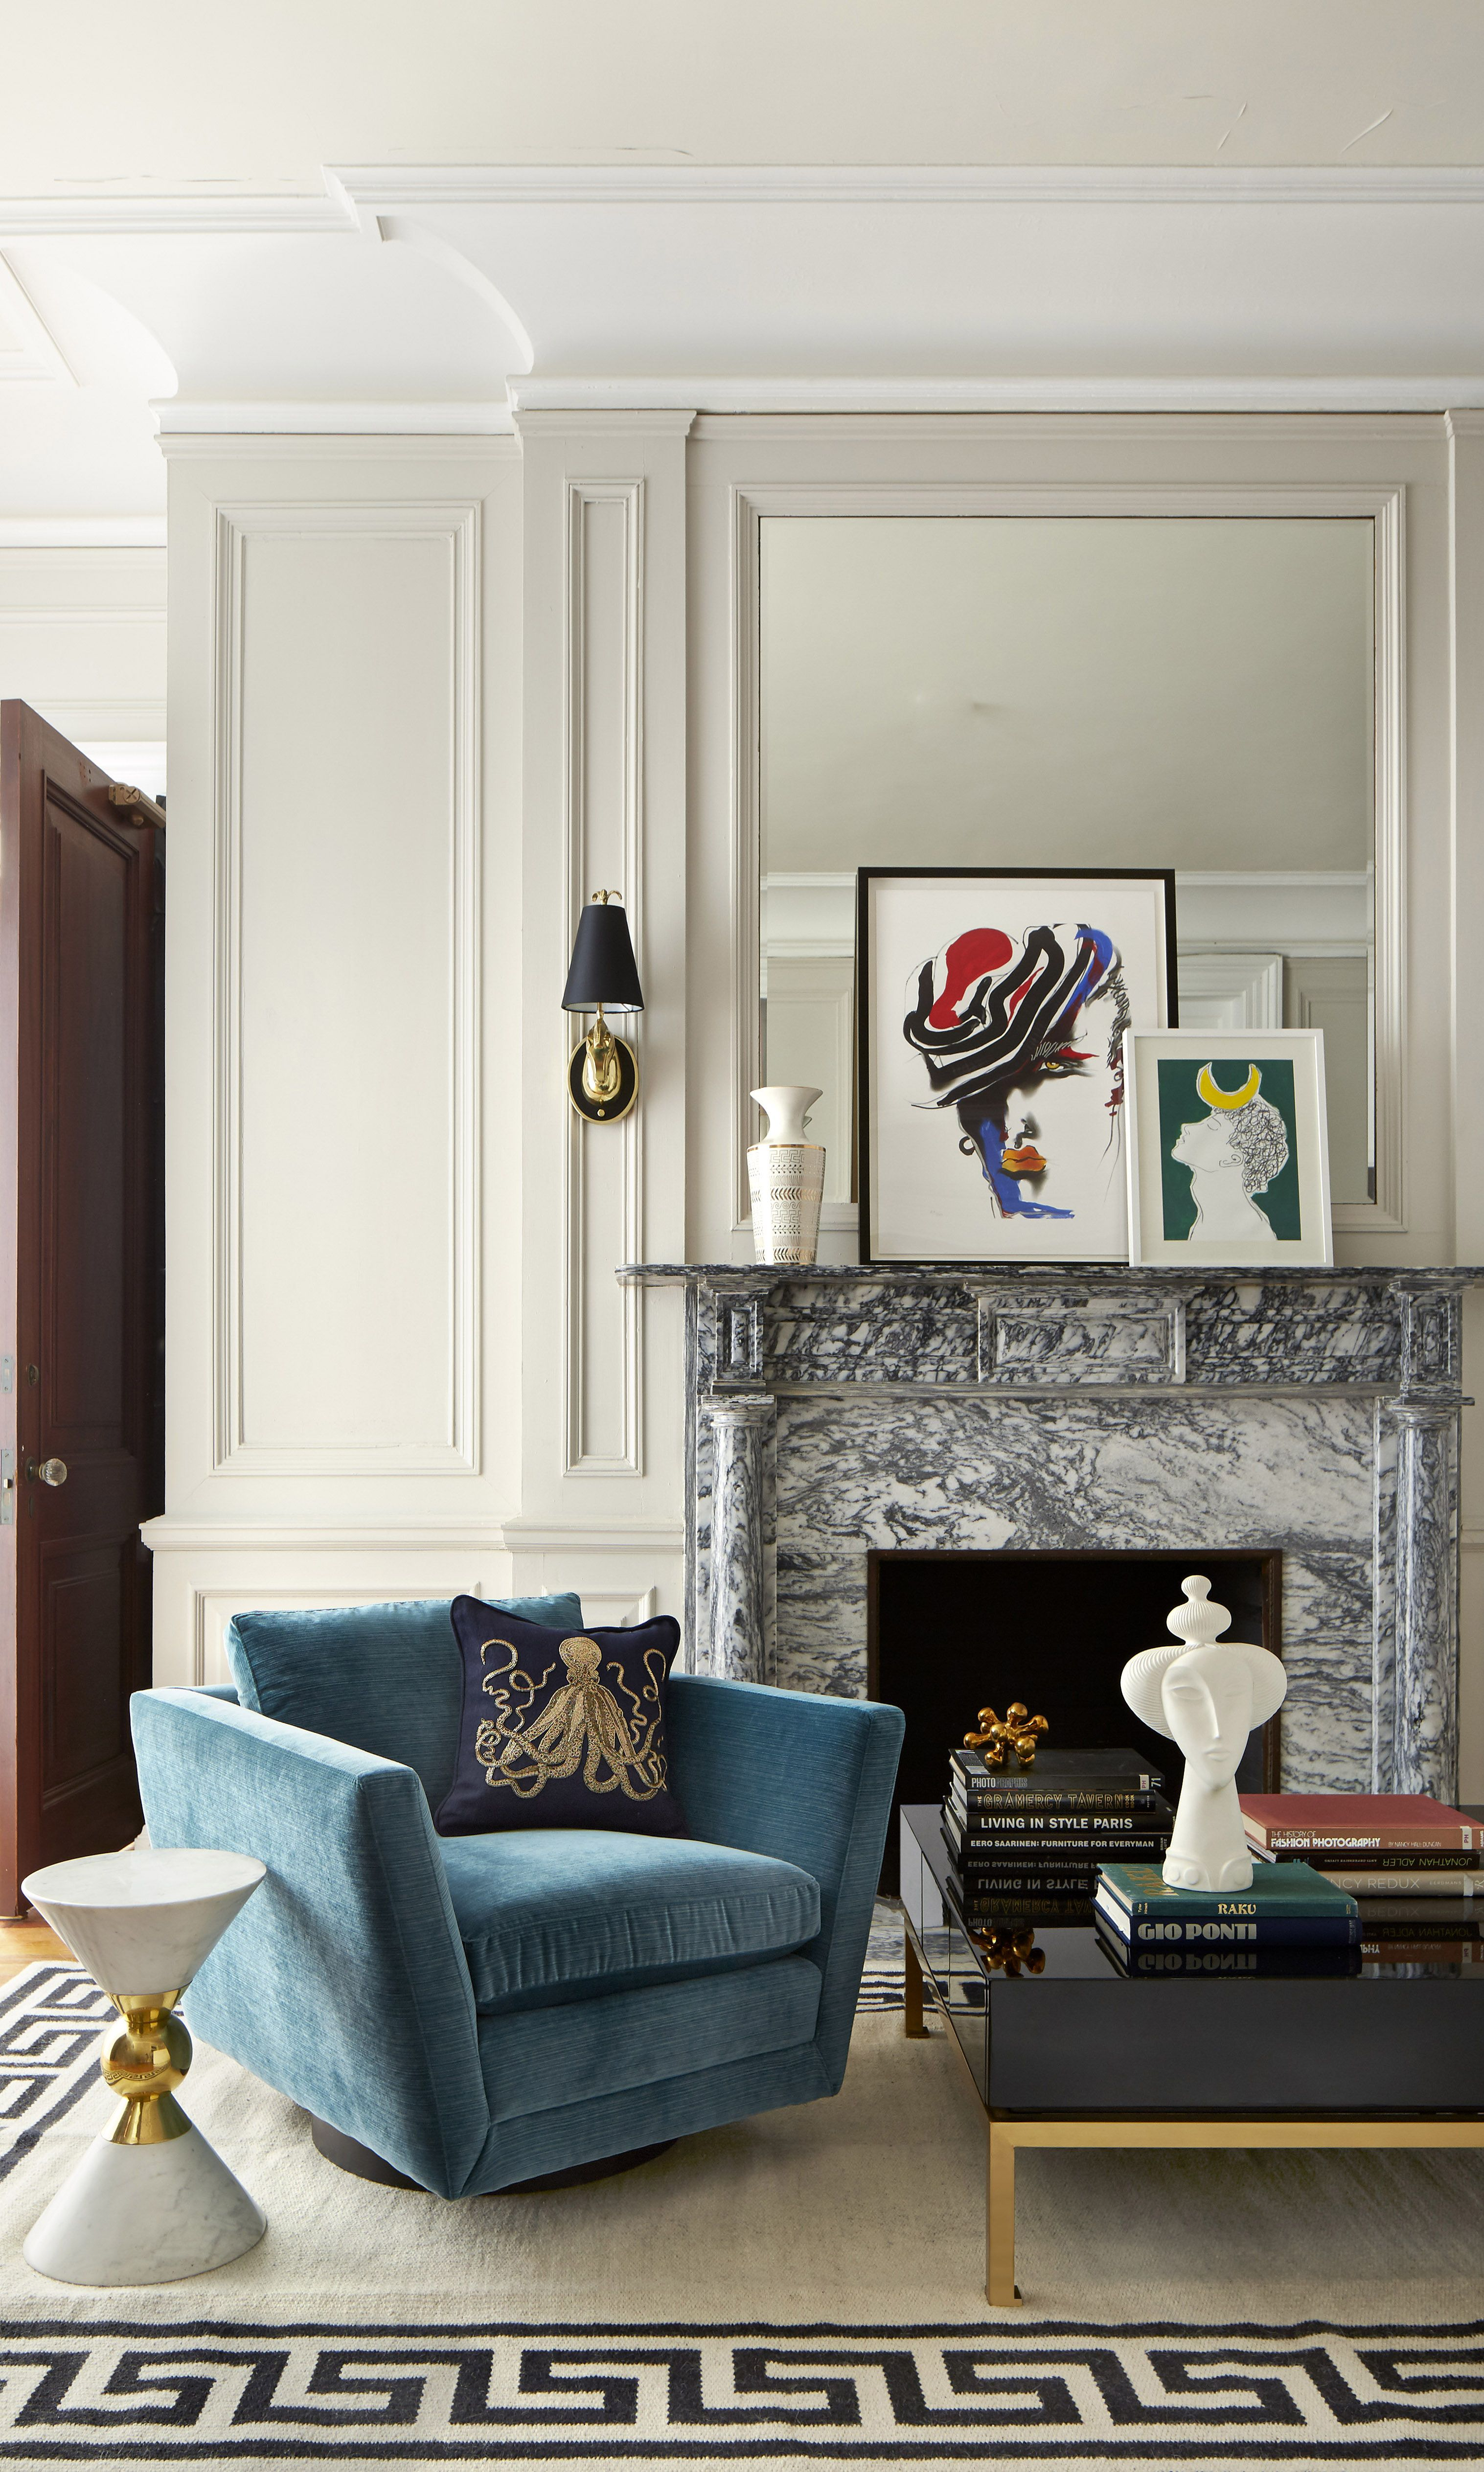 Jewel tones black lacquer shiny brass crisp greek key trim and chinoiserie details are decorating necessities featuring the jonathan adler peking greek